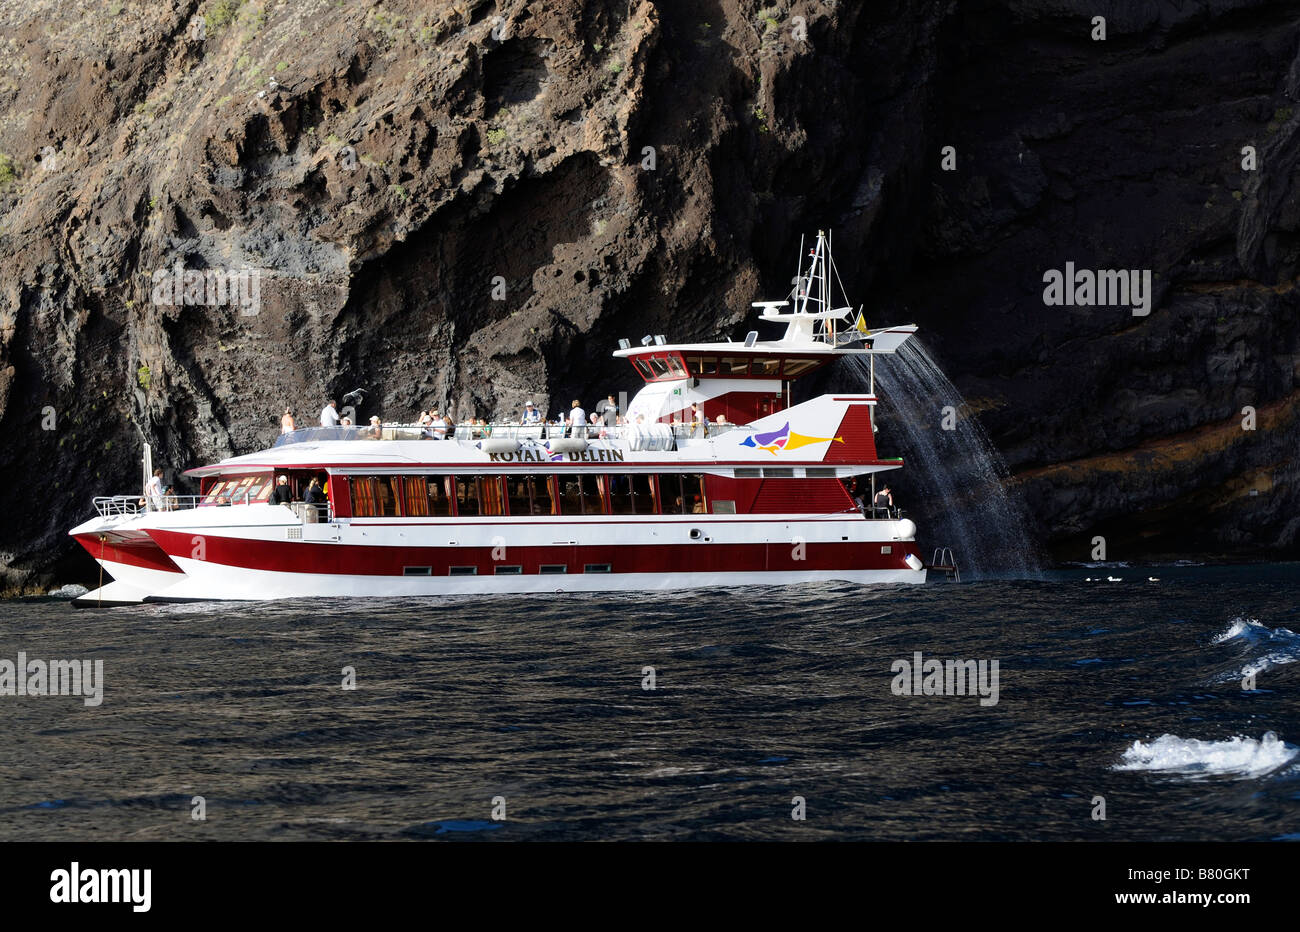 The Royal Delfin tourist boat trip of the Los Gigantes cliffs in the Atlantic Ocean of Tenerife Canary Islands - Stock Image